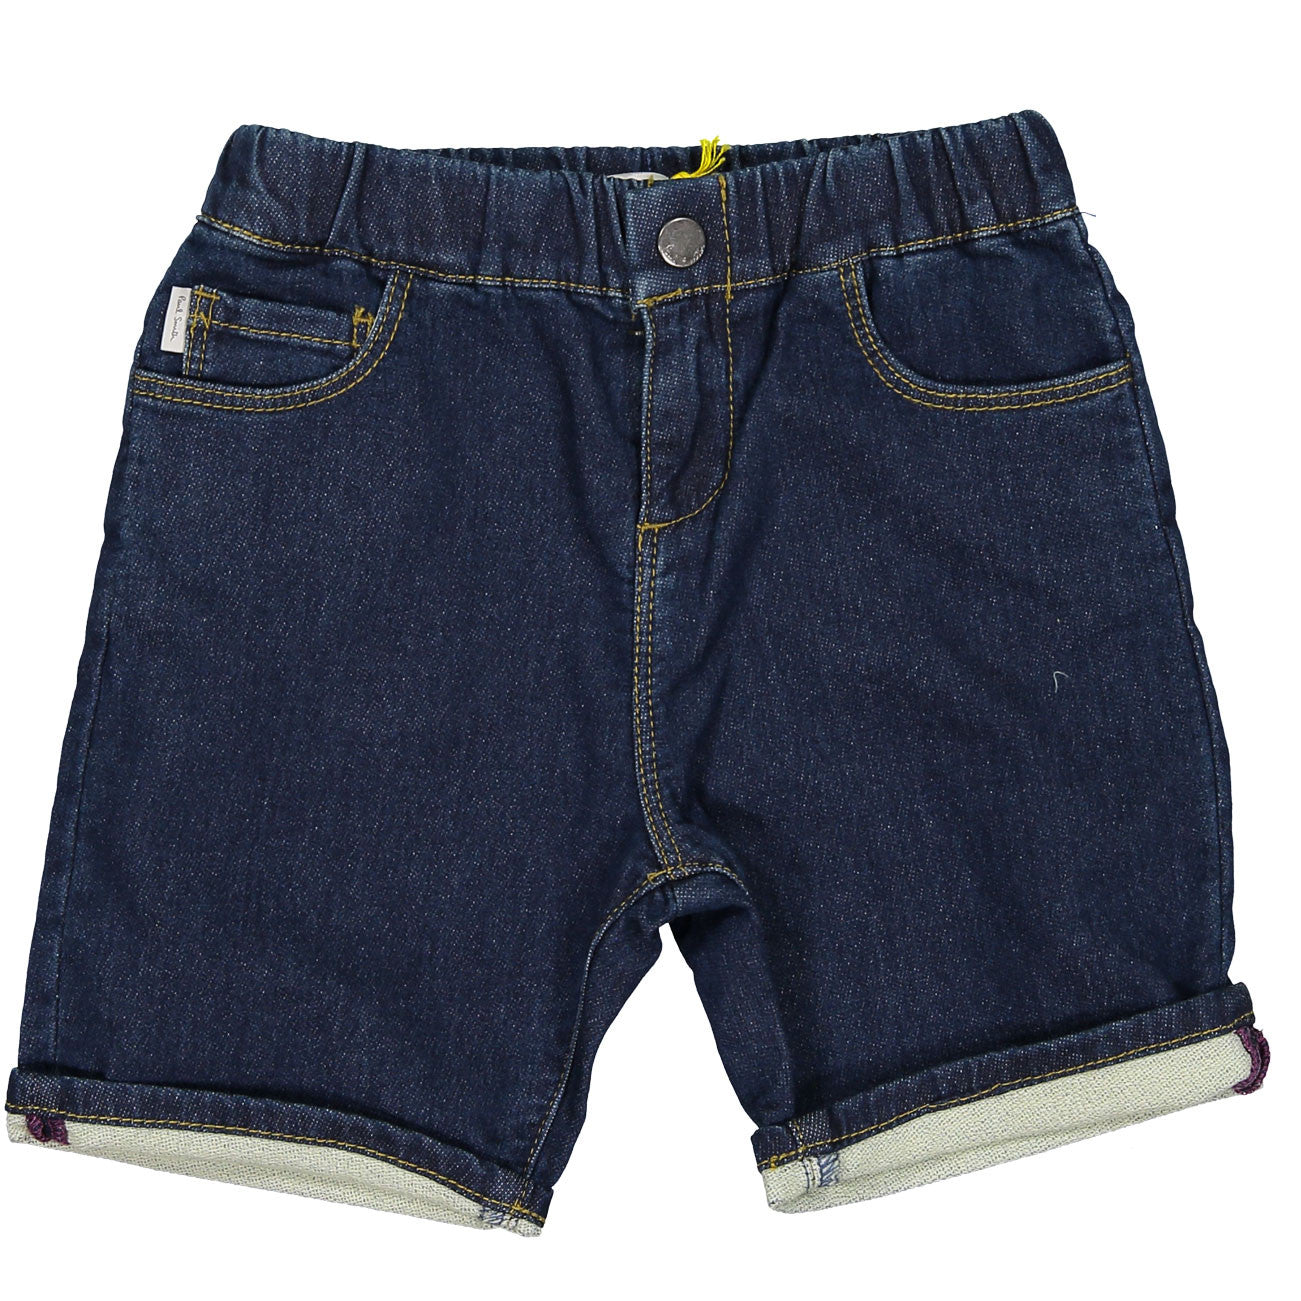 Paul Smith Indigo Fleece Short